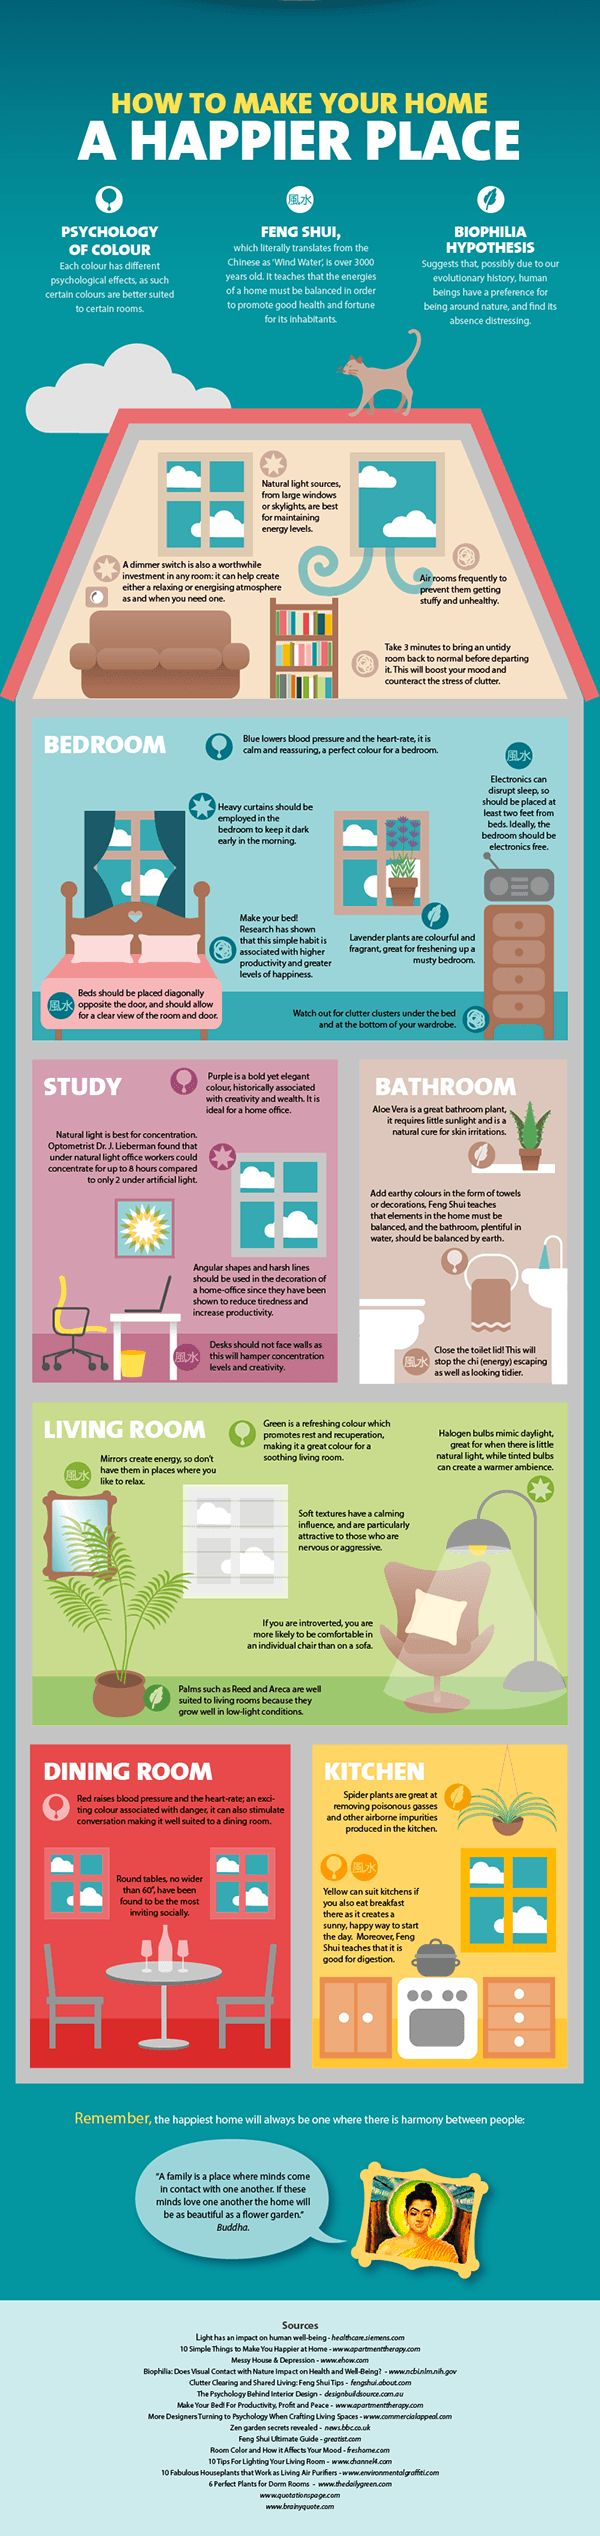 Make Your Home A Happier Place